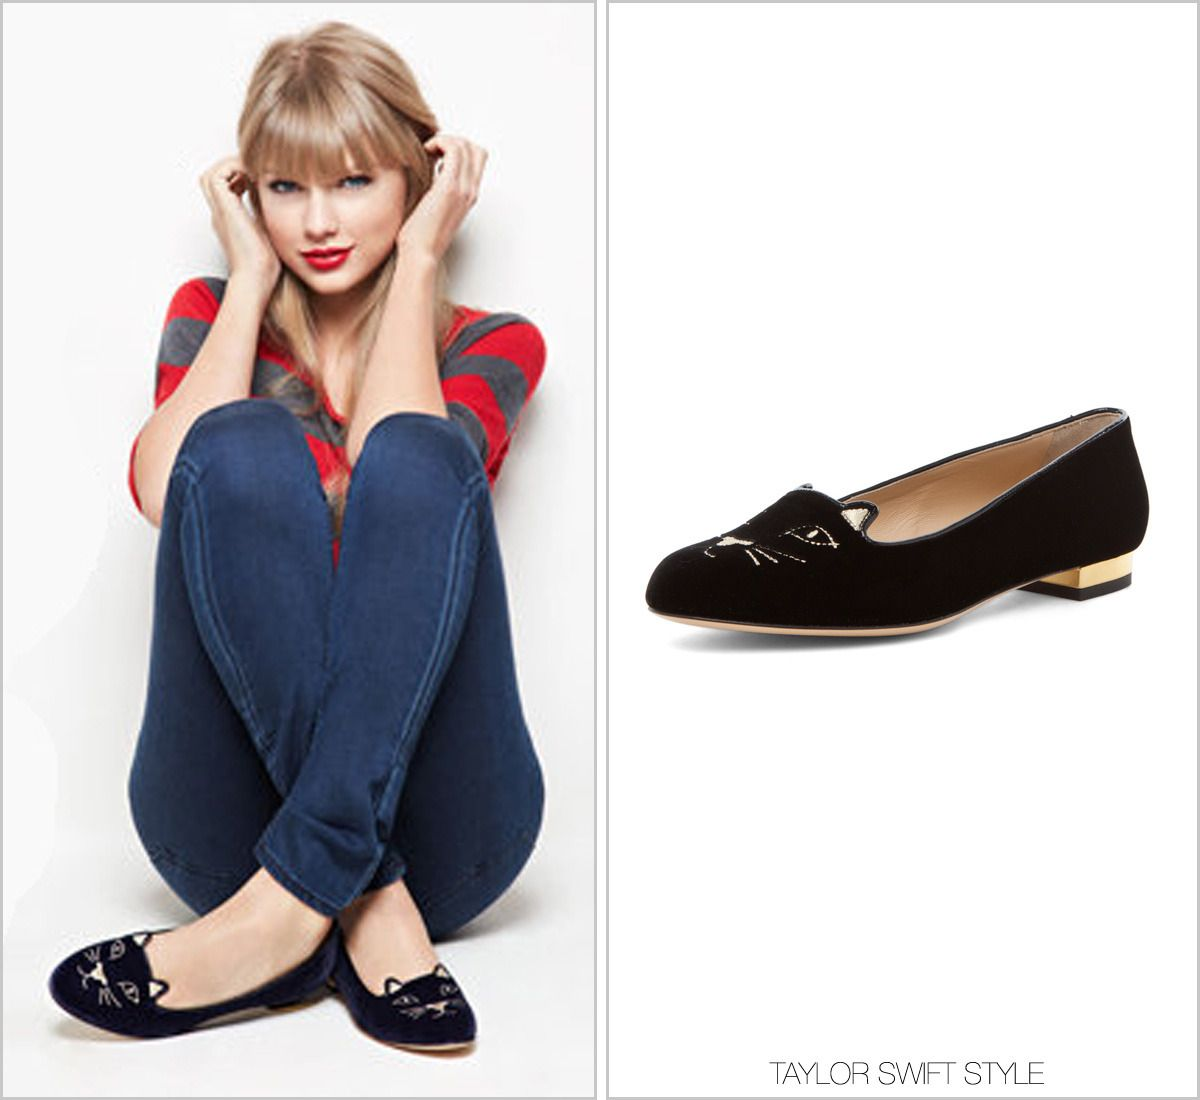 Pin On Taylor Swift The Queen Of My Heart